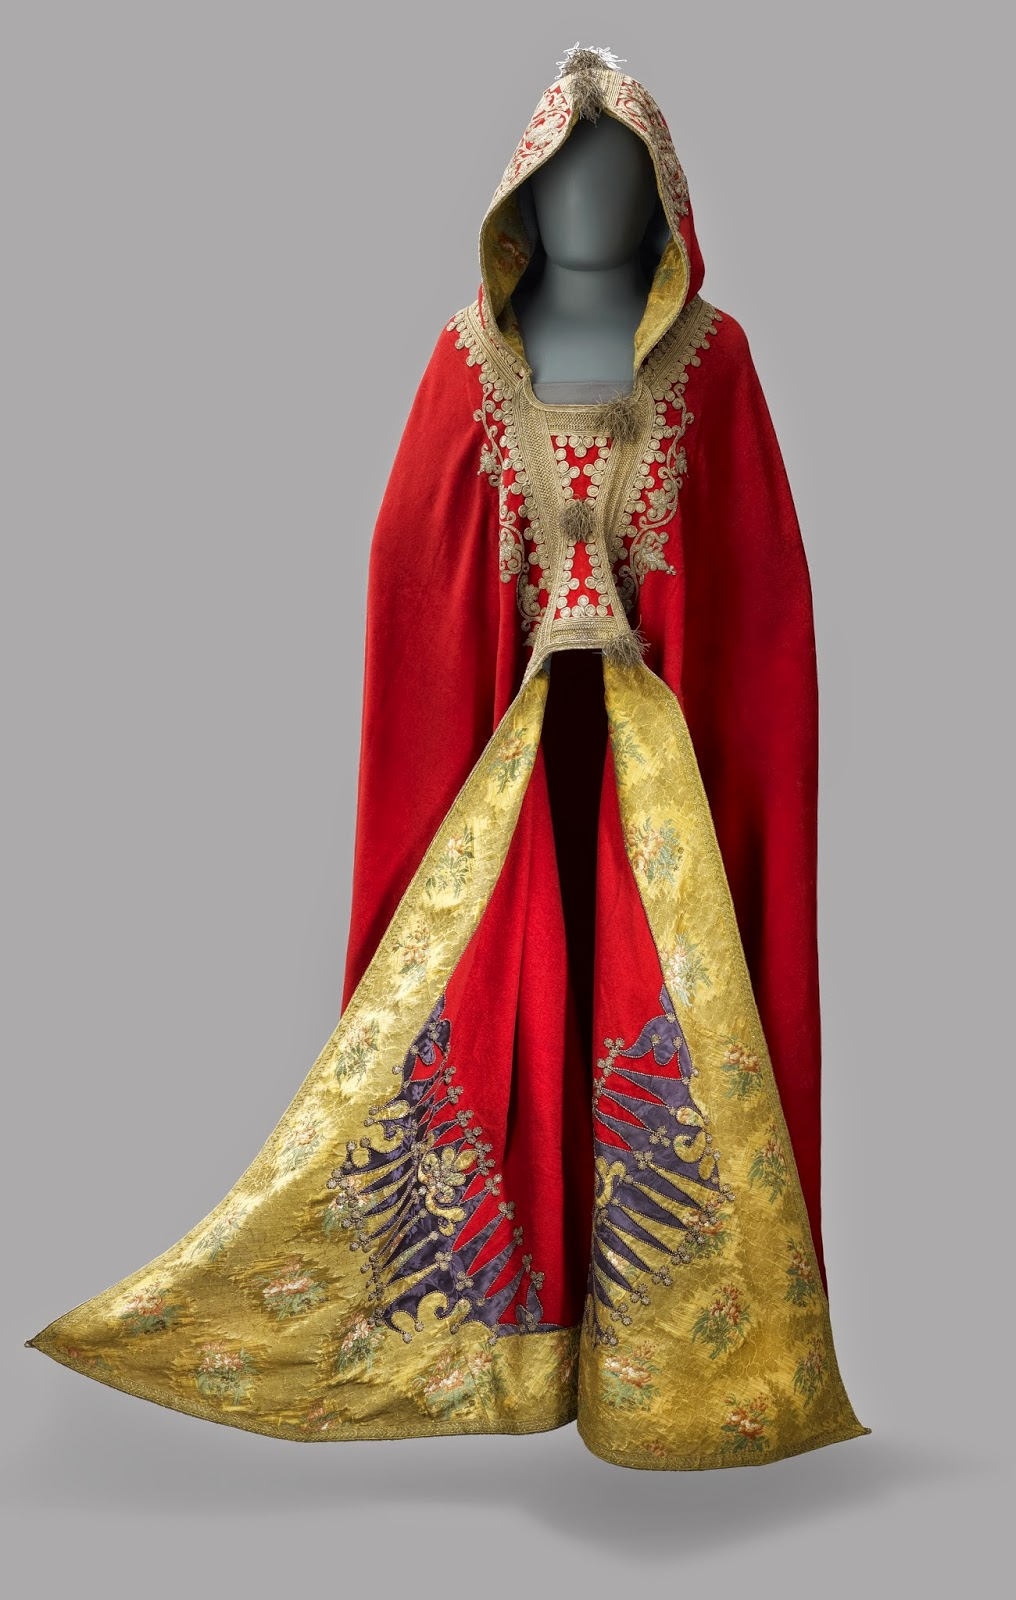 Cloak belonging to Napoleon Bonapartetaken from the Emperor's   fleeing baggage train and presented to George, Prince Regent,  by Field-Marshal Blucher (1797-1805)  Royal Collection Trust © Her Majesty Queen Elizabeth II 2014